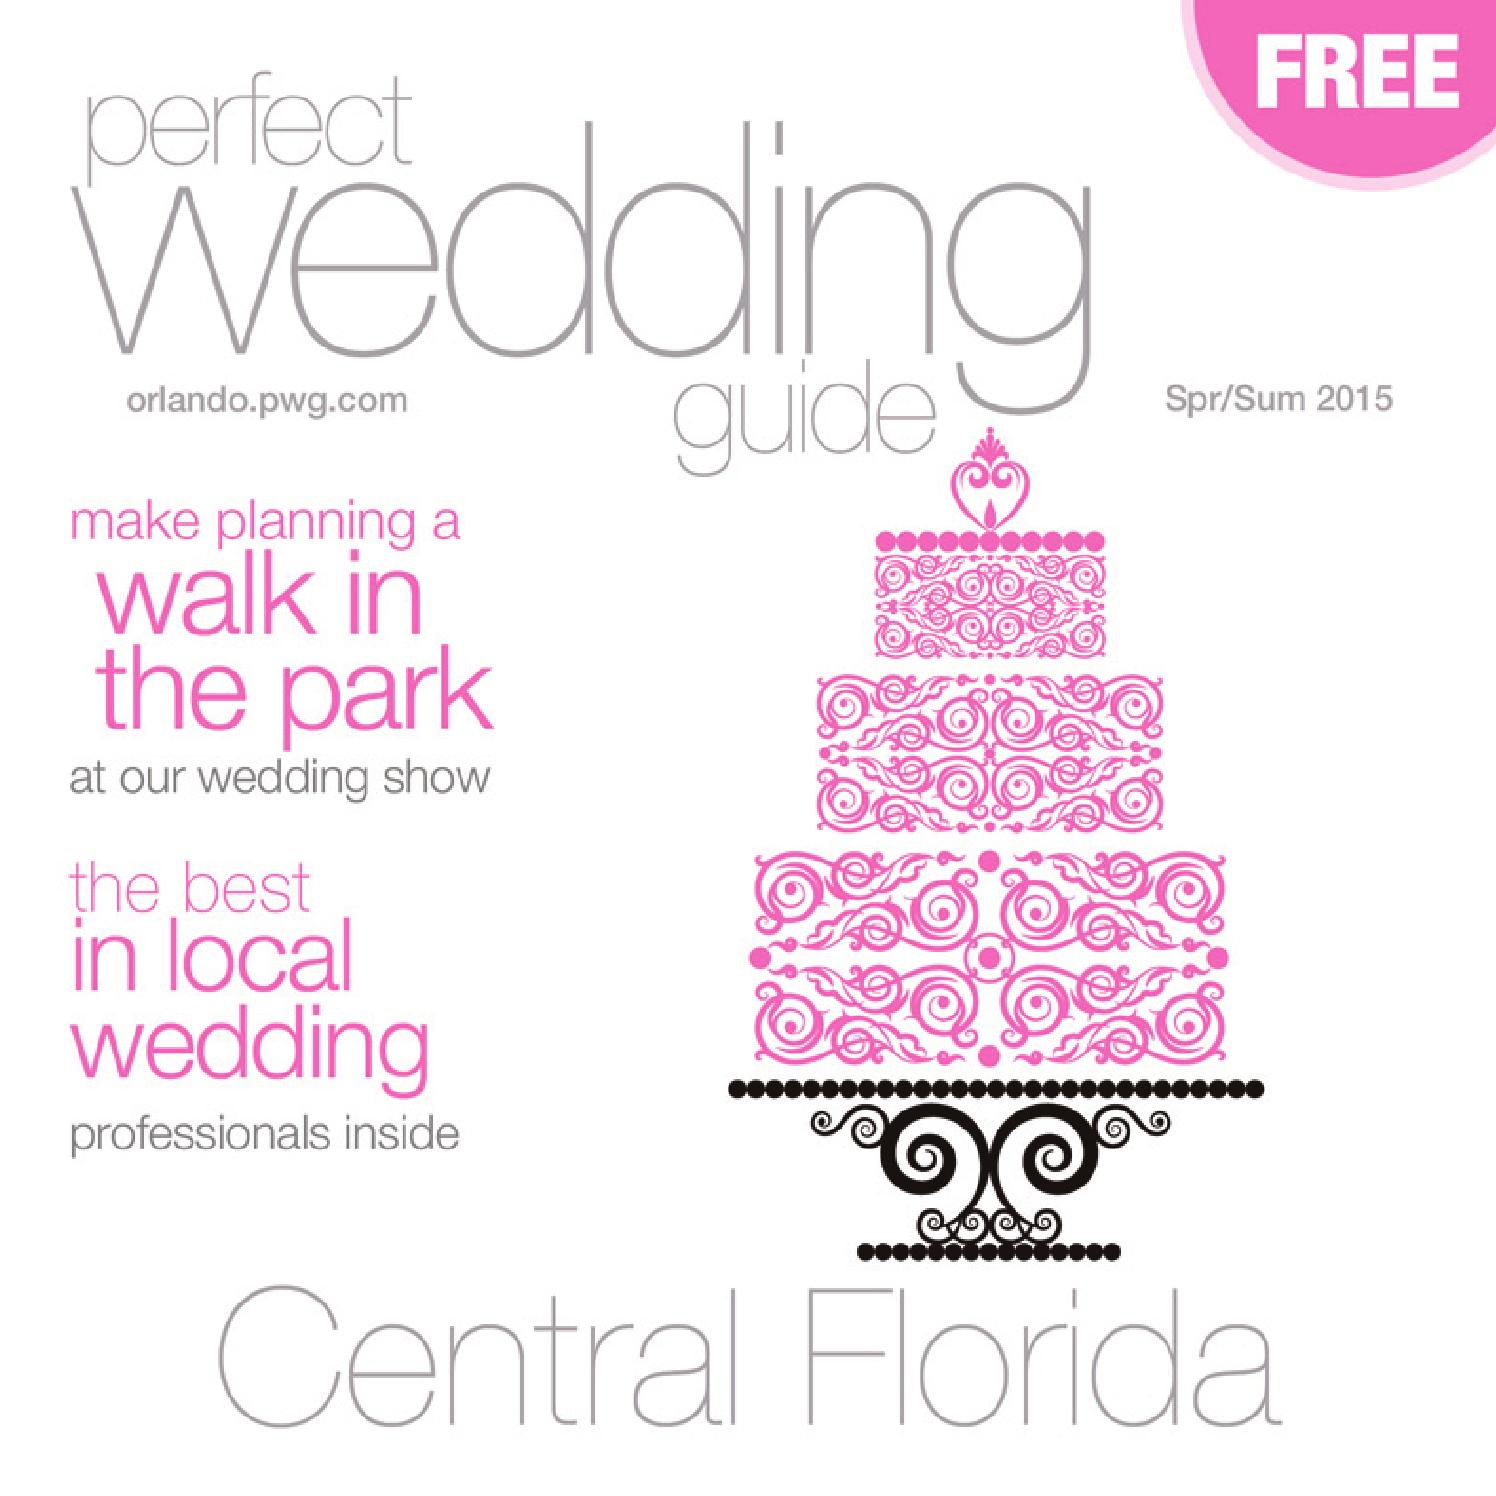 Perfect Wedding Guide Central Florida Spring/Summer 2015 by Rick ...